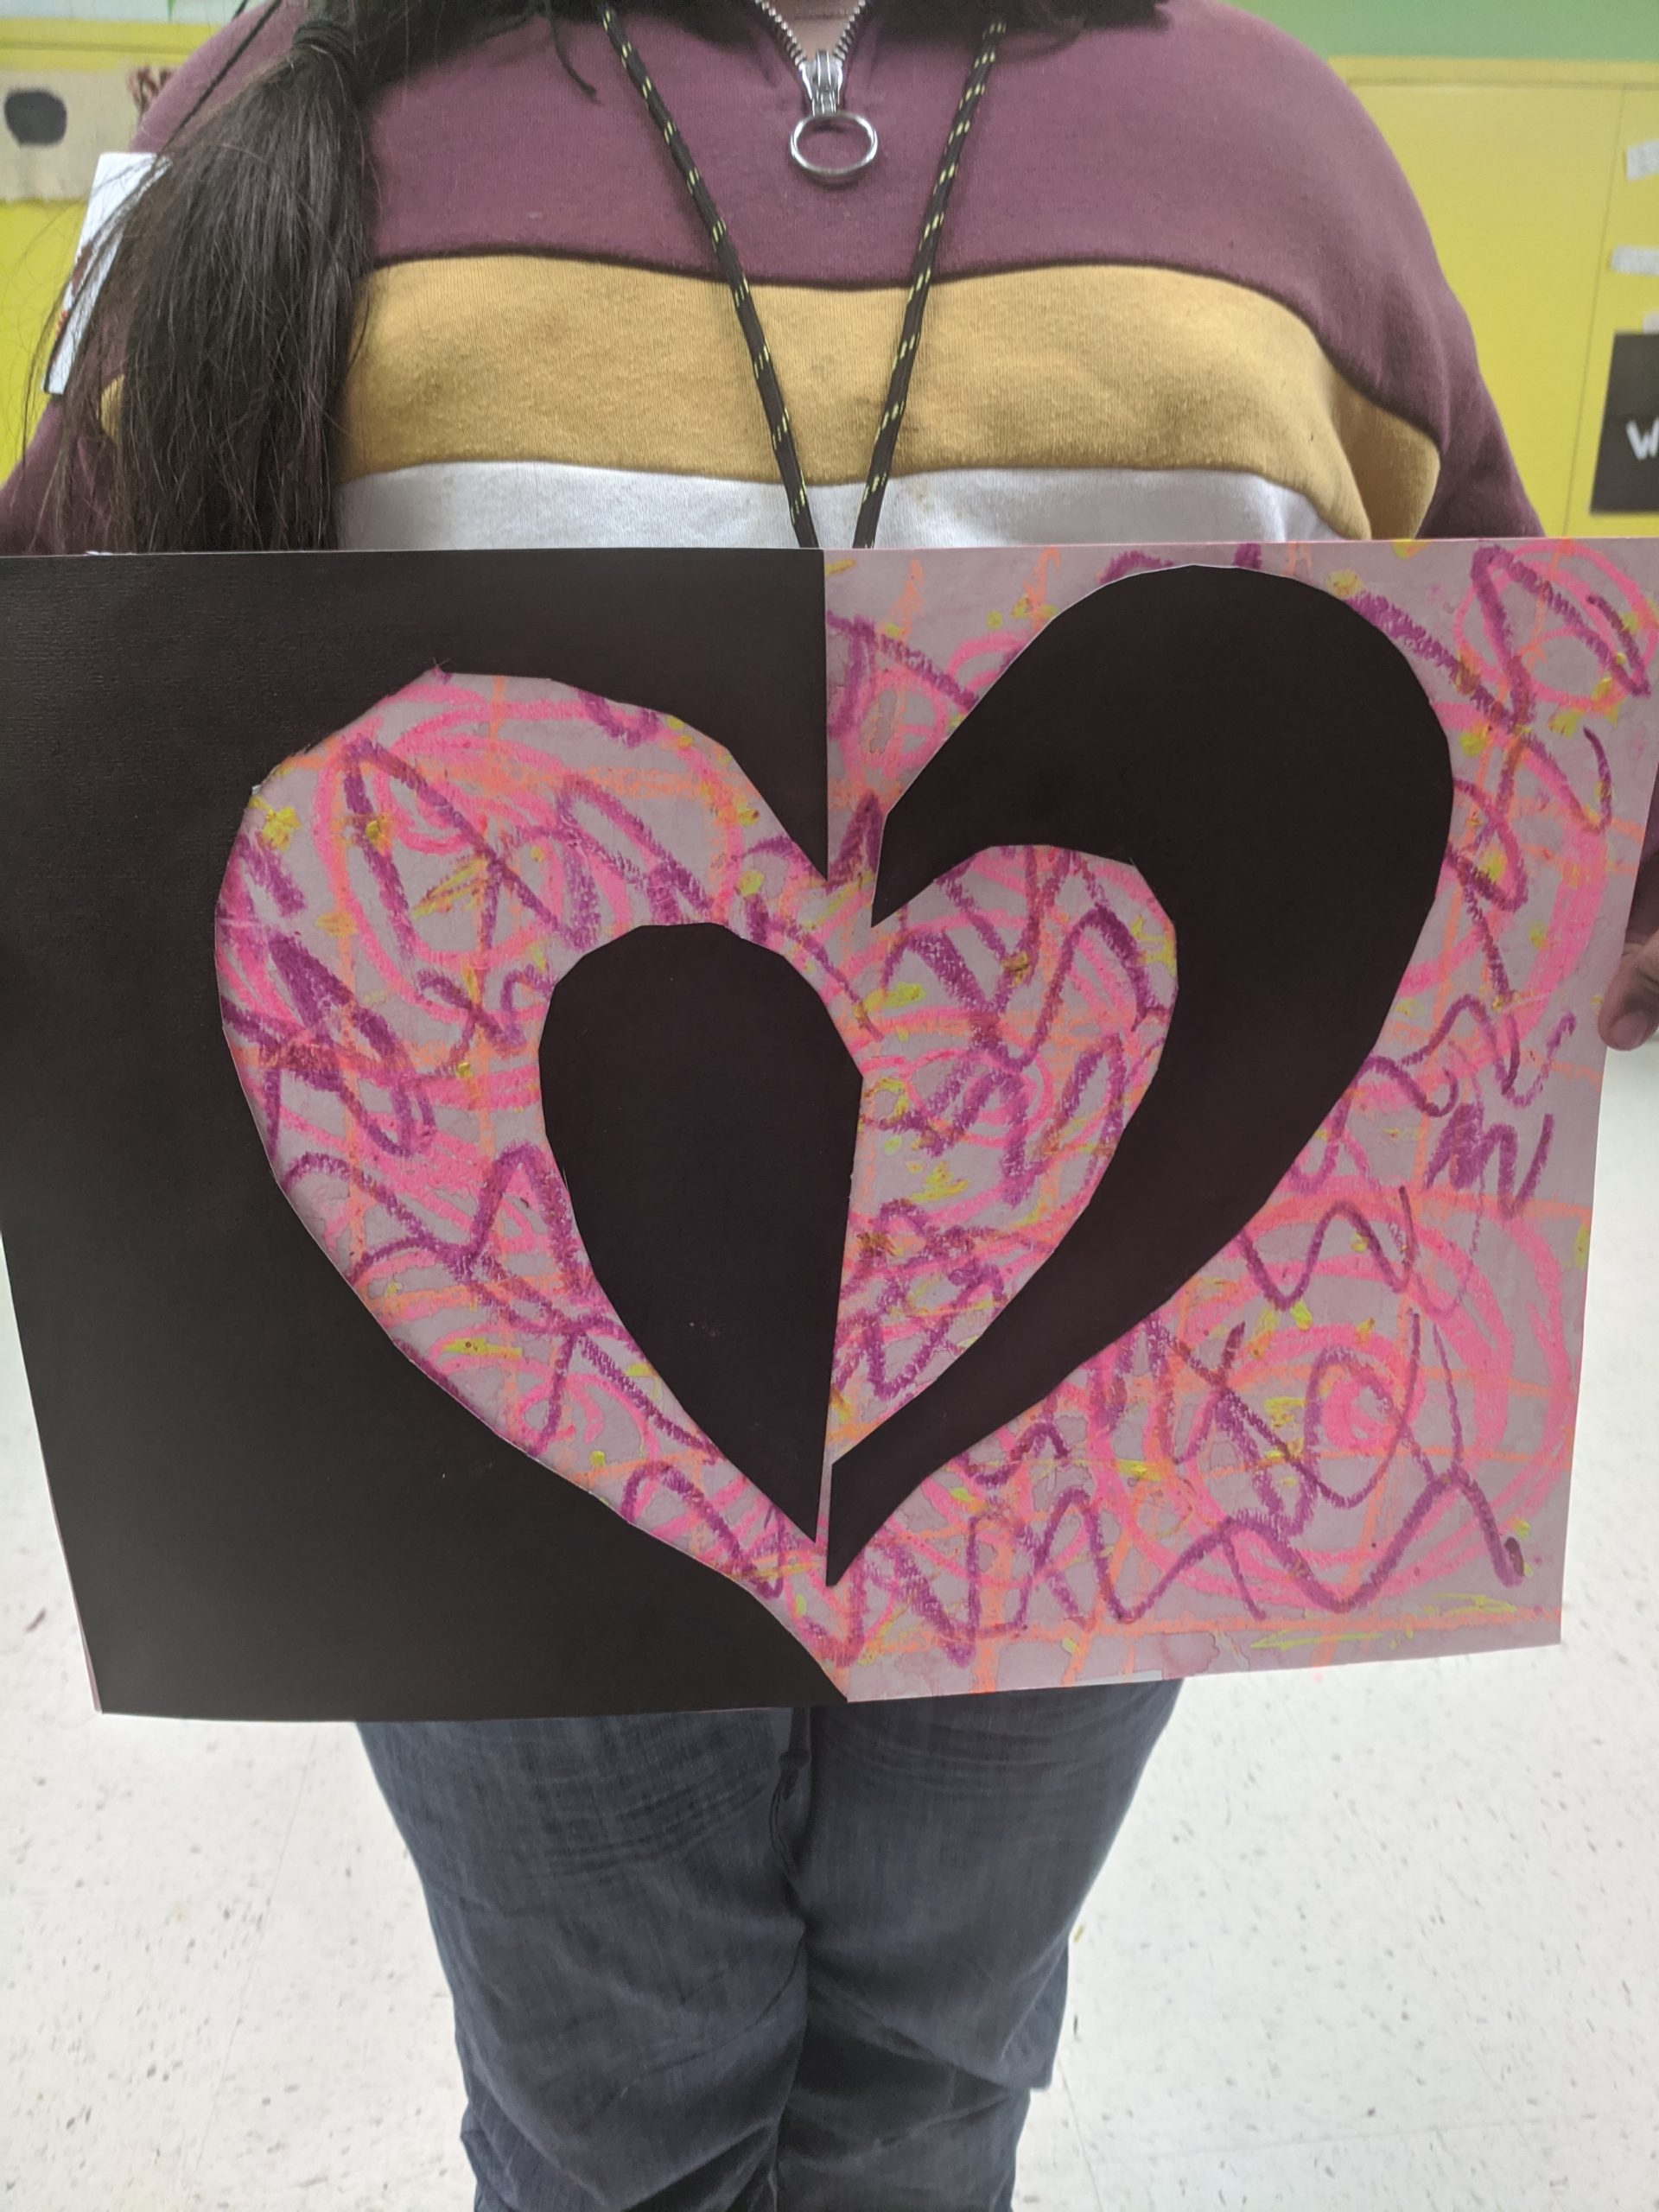 Donate to Scribble Me Silly - photo of artwork - a heart